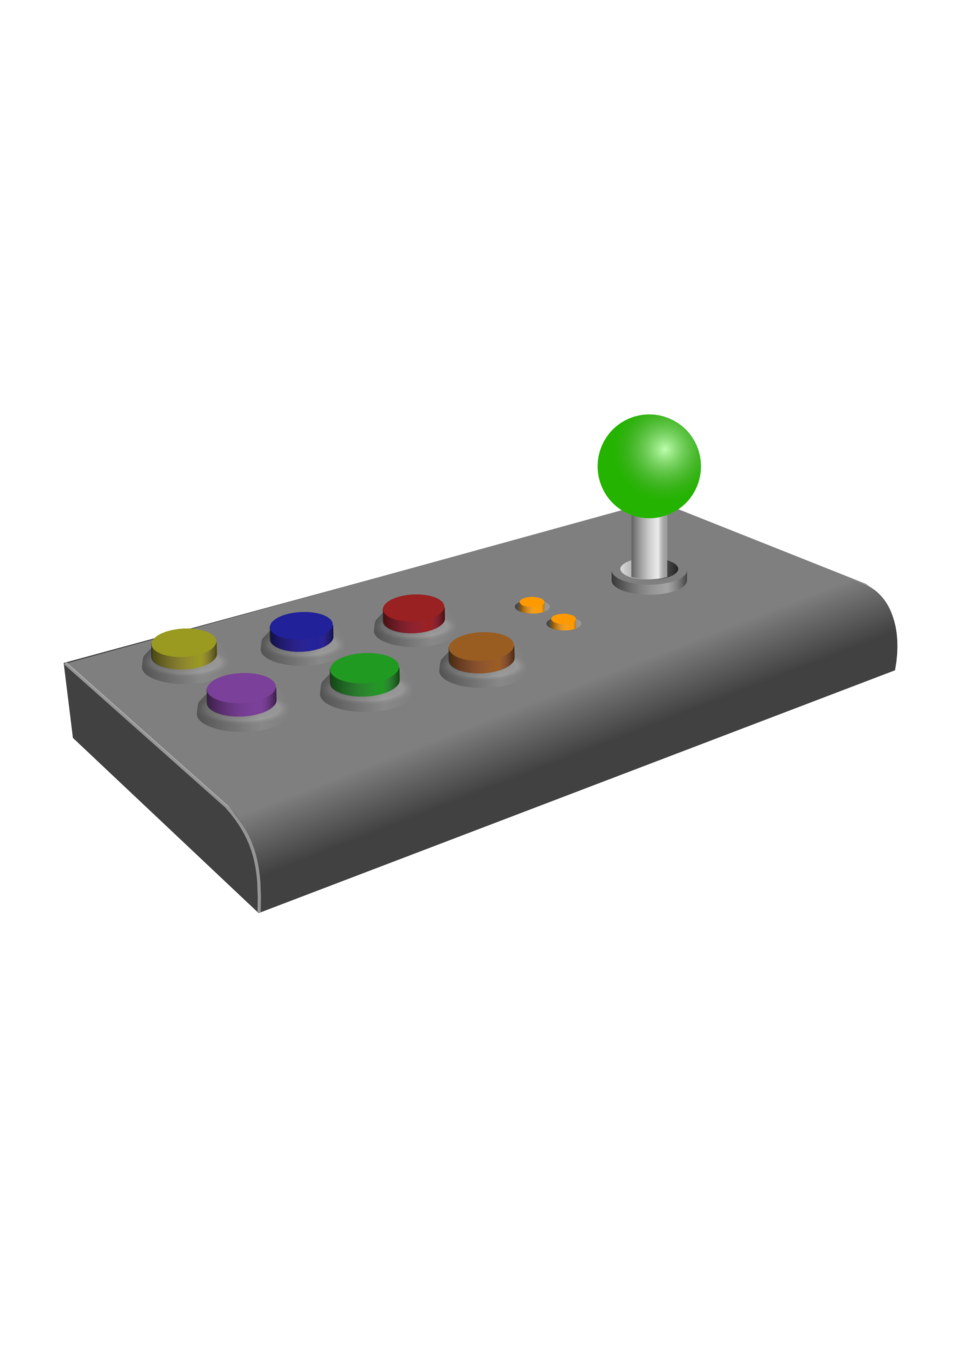 clipart royalty free download Arcade clipart game console. Joystick free on dumielauxepices.